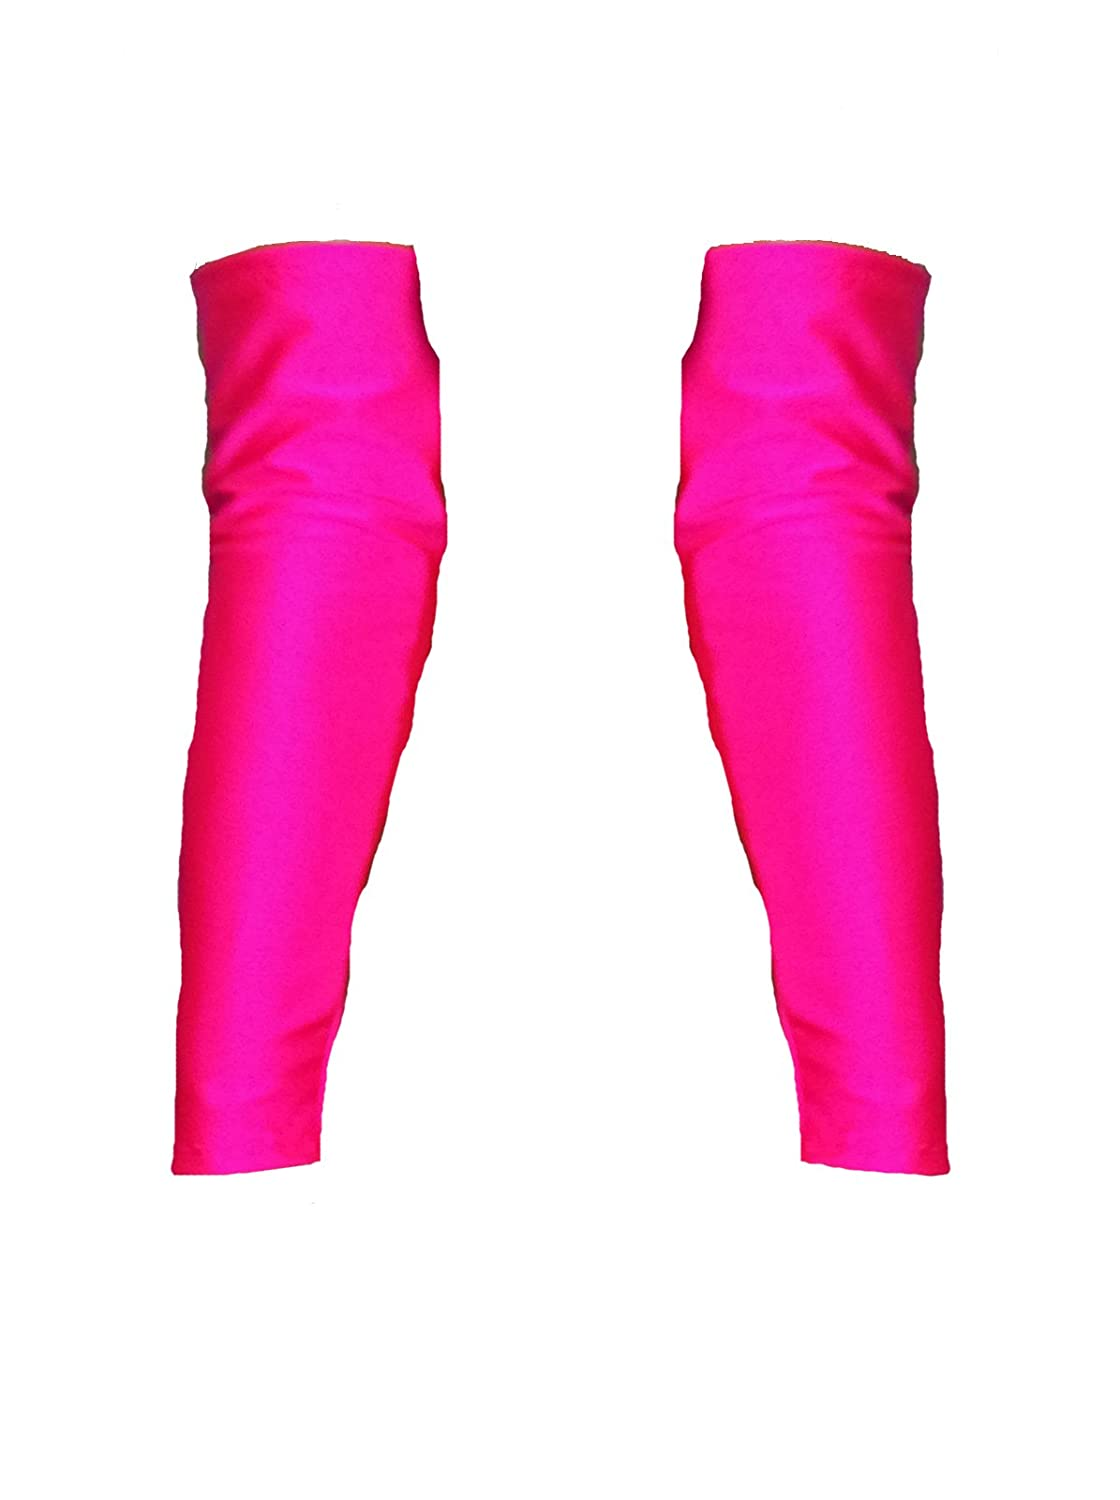 G09 - A Pair of UV Pink